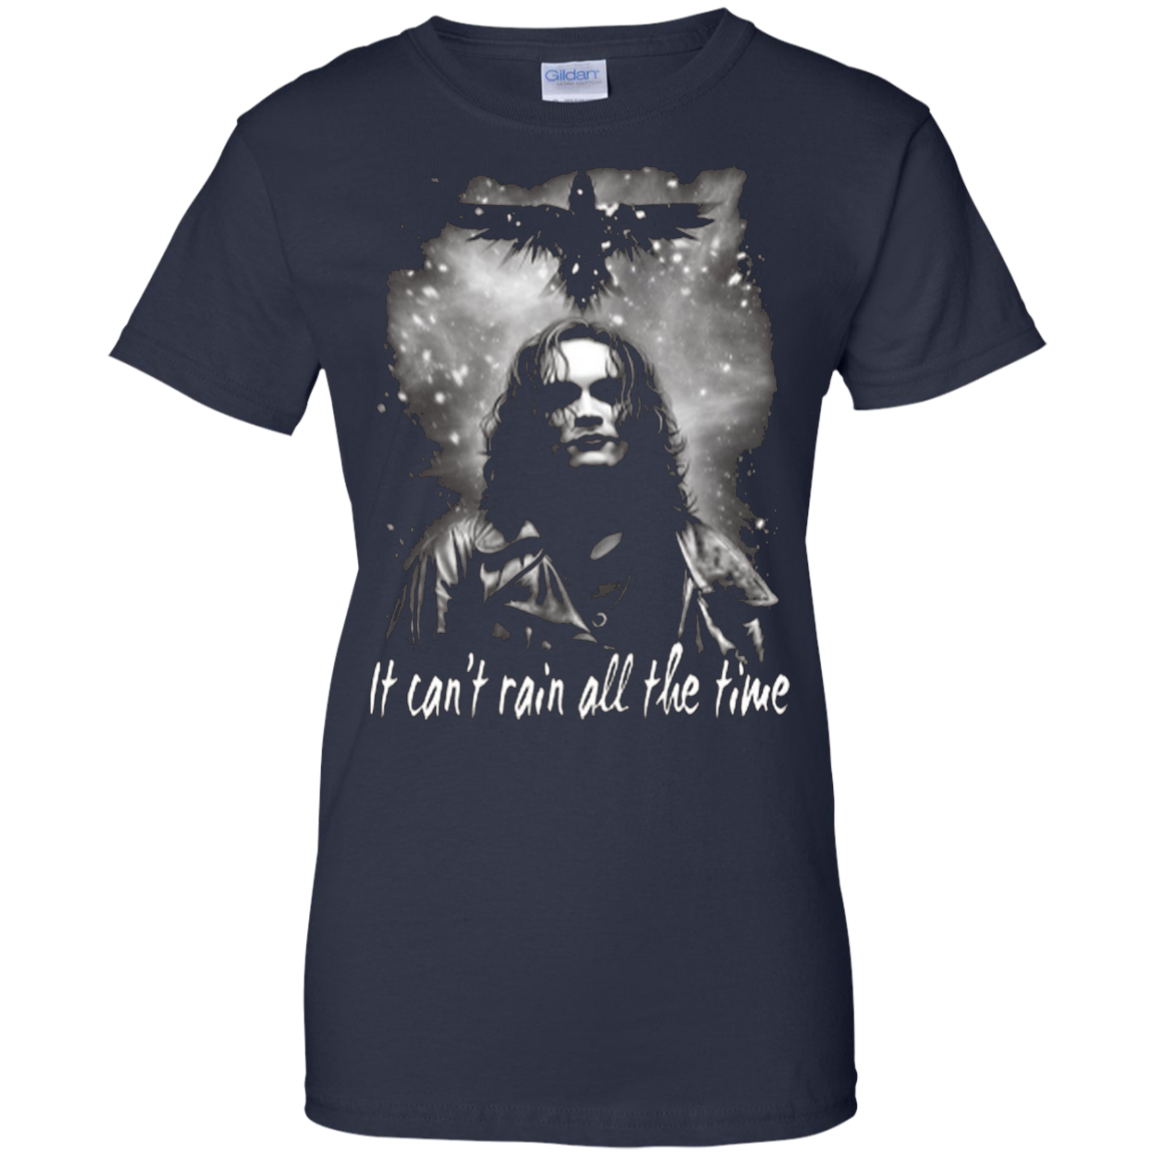 It can't rain all the time T-Shirt 2016